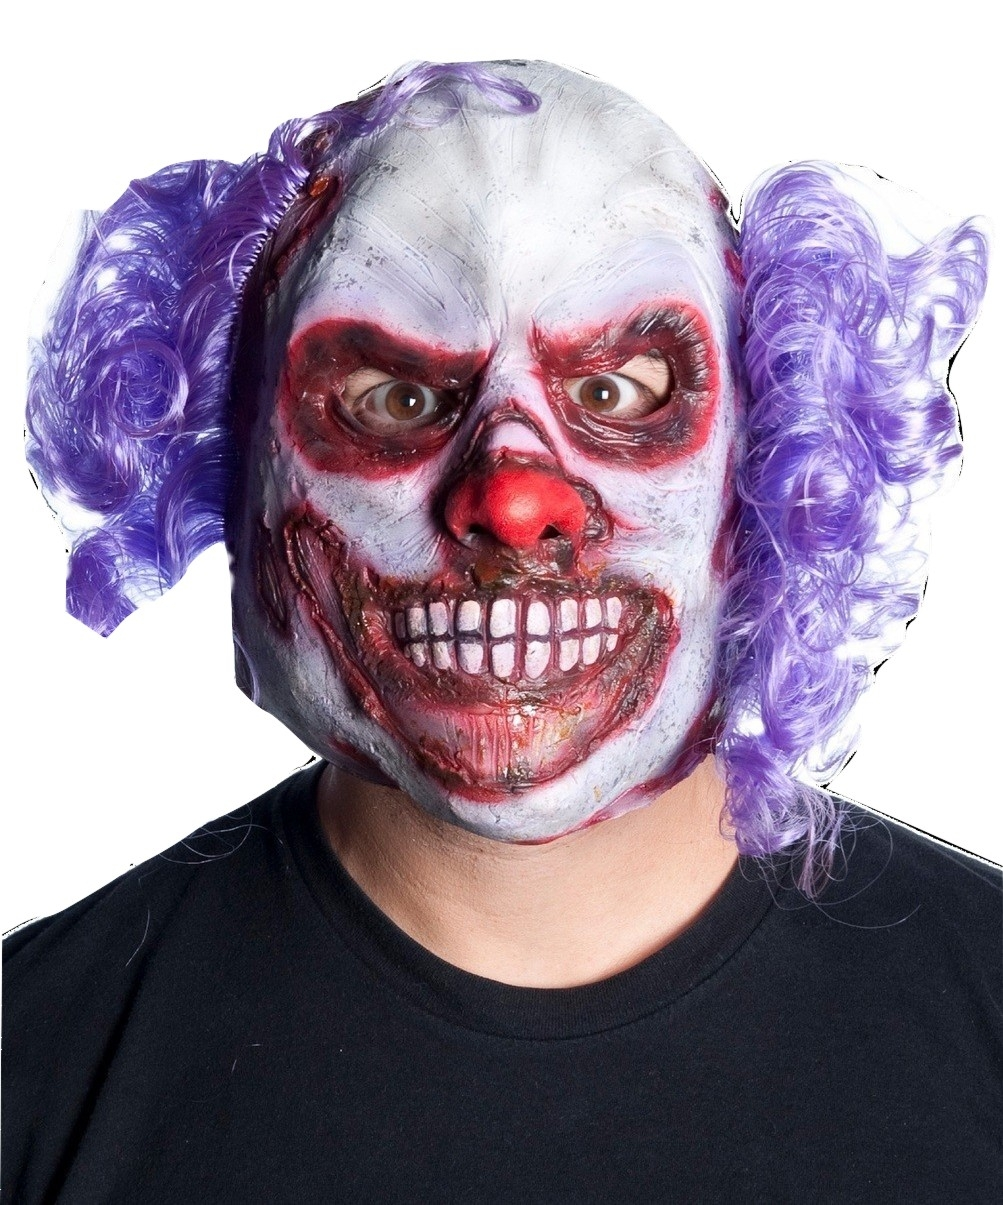 busted bald scary clown mask scary evil clown mask halloween costume accessory